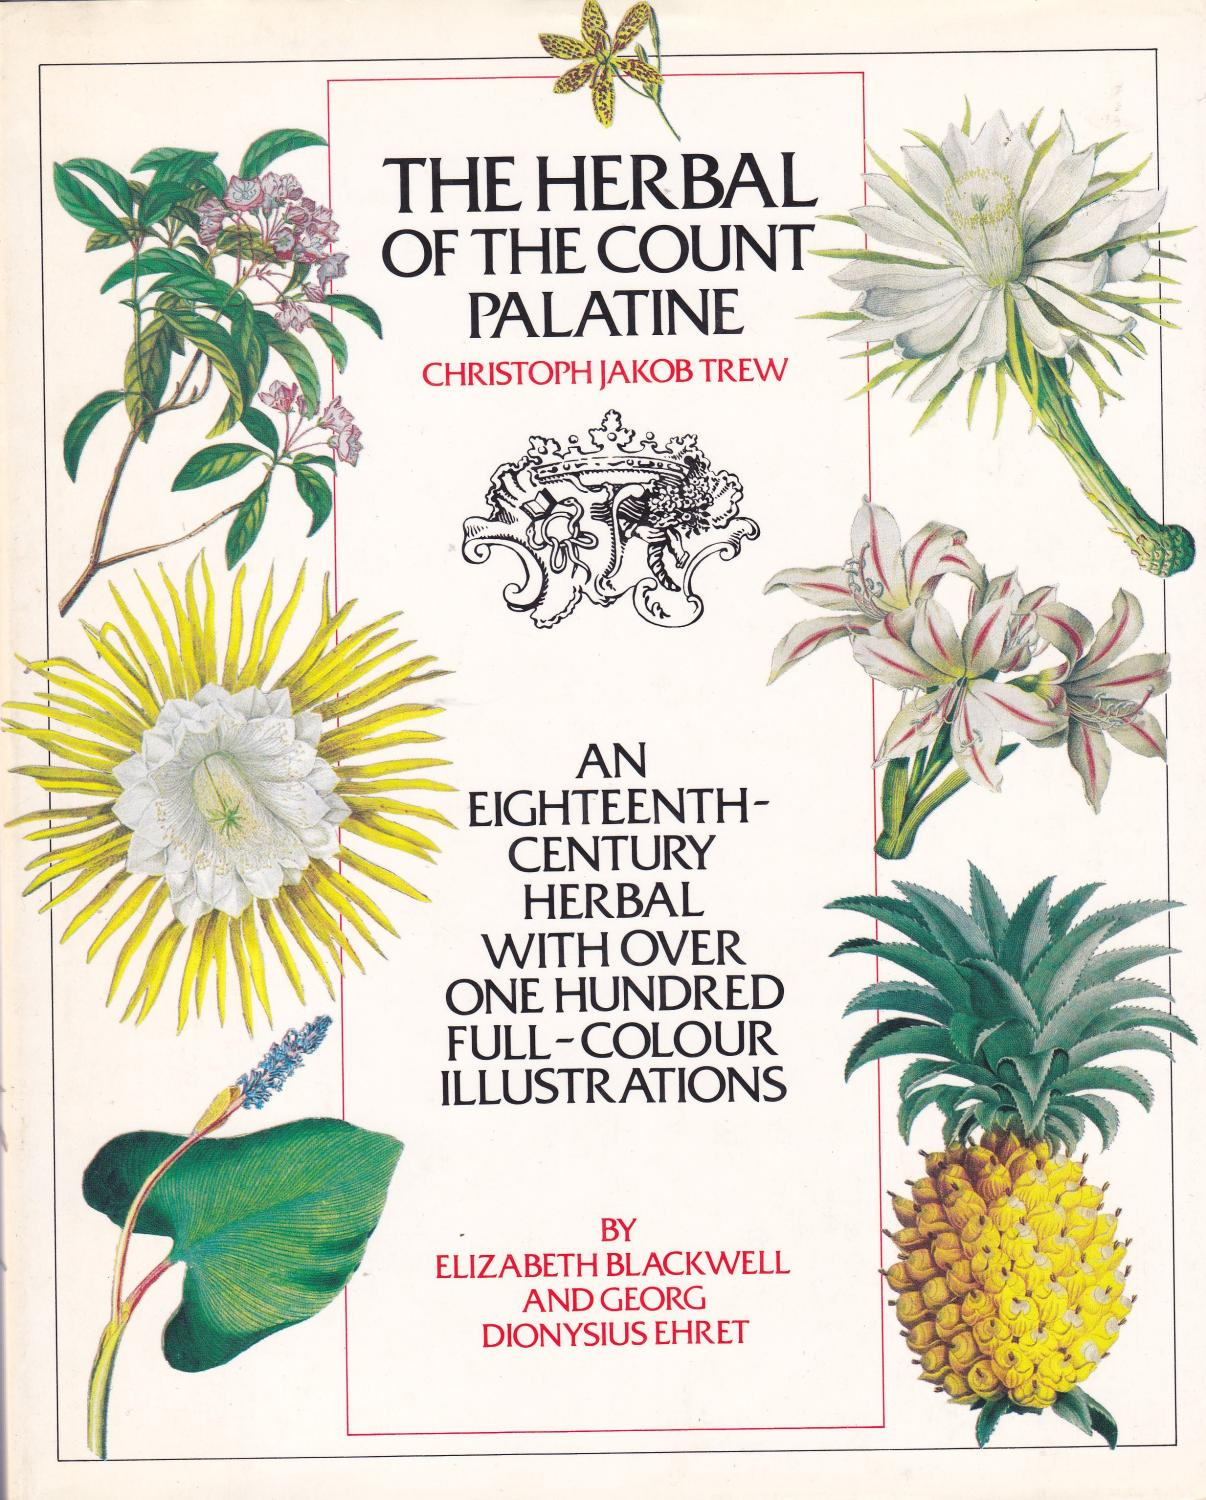 The Herbal of the Count Palatine by Elizabeth Blackwell and Georg.